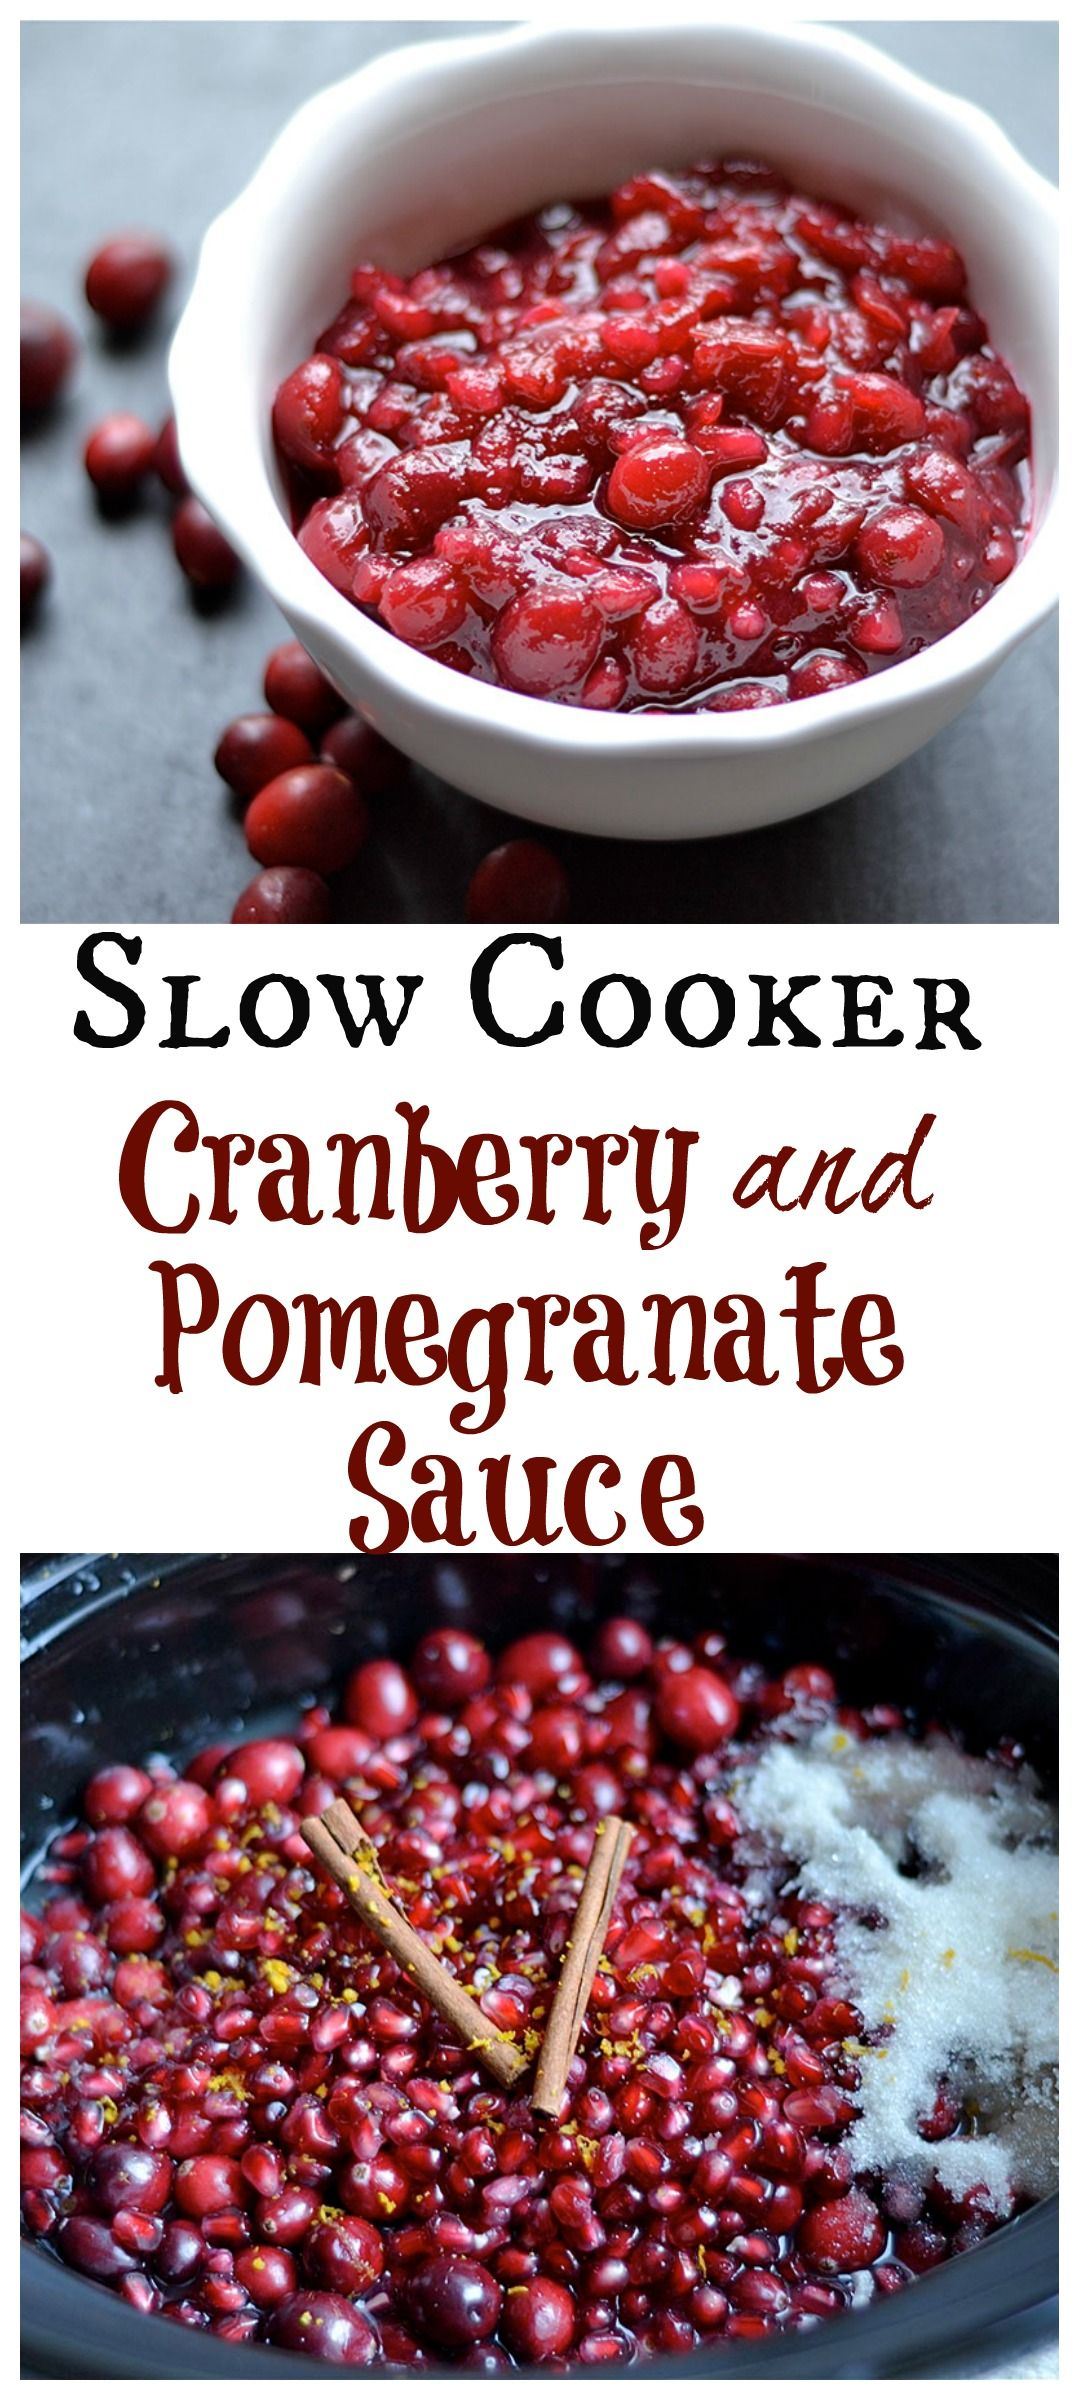 Make the holidays easy on you with this SLOW COOKER cranberry sauce!! Oh and the added deliciousness of pomegranate will make this your new favorite way to make the classic dish!! GF and Vegan.